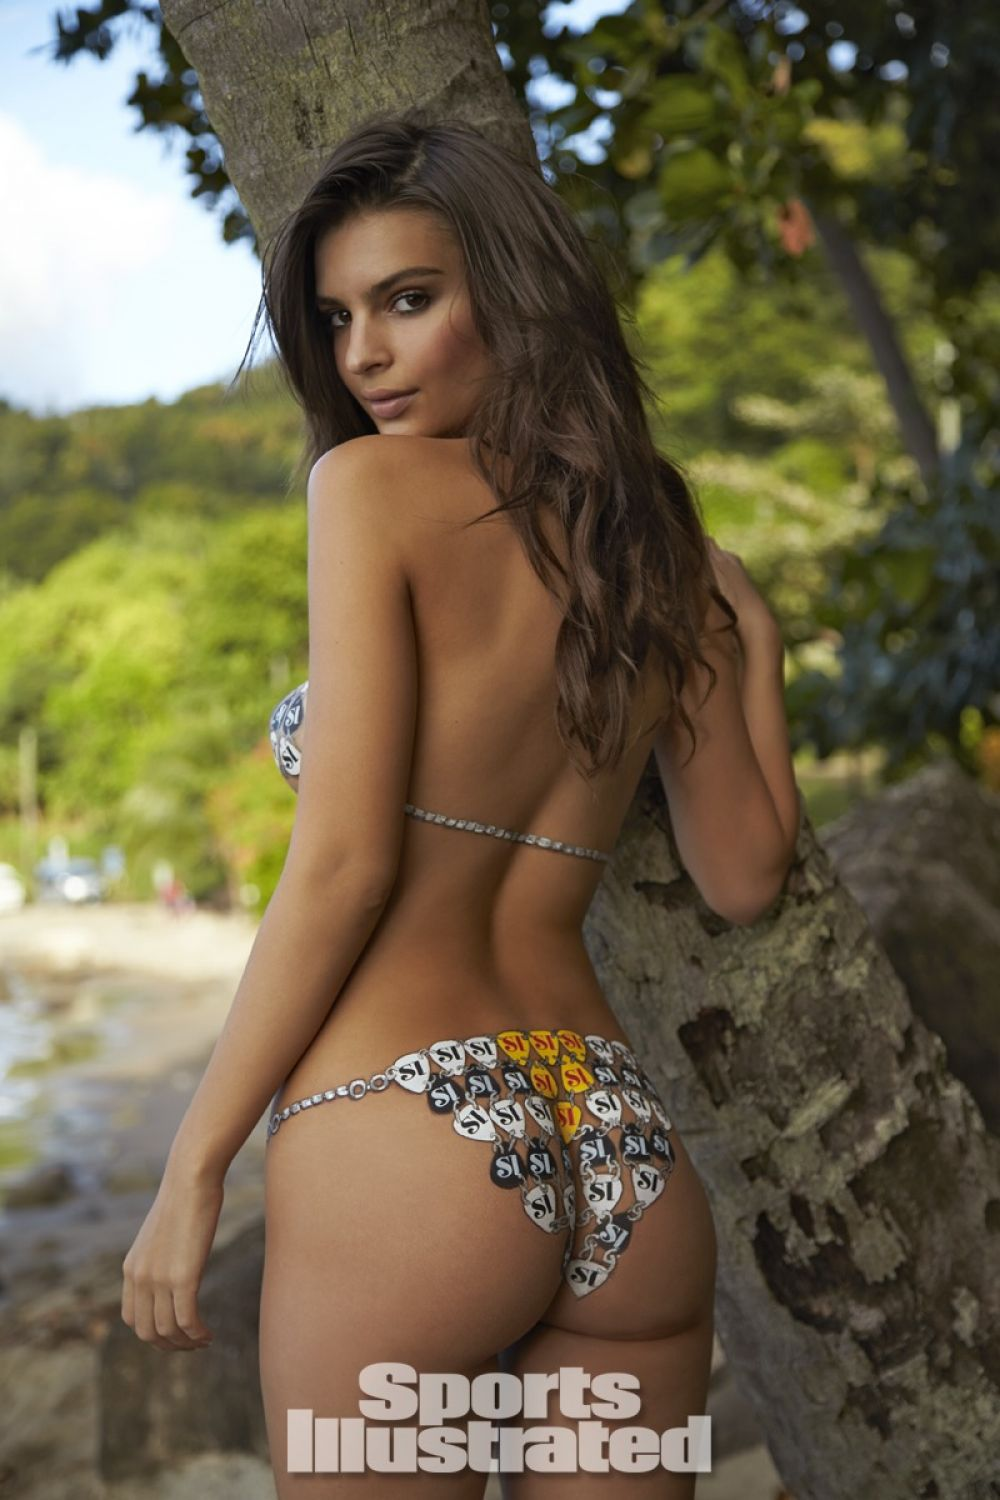 Emily Ratajkowski In Sports Illustrated 2014 Swimsuit